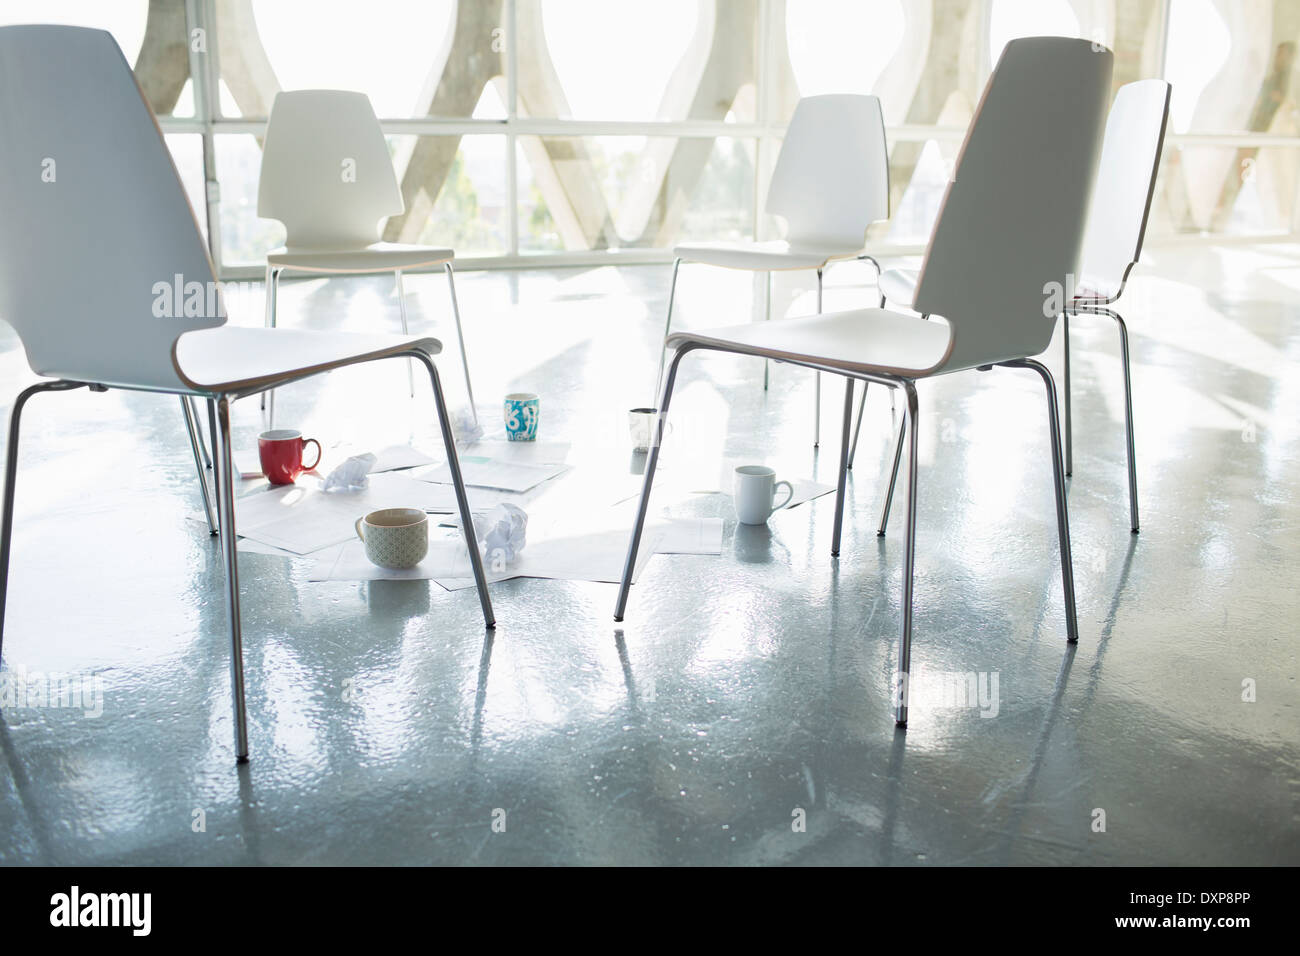 Coffee cups and paperwork at circle of chairs - Stock Image